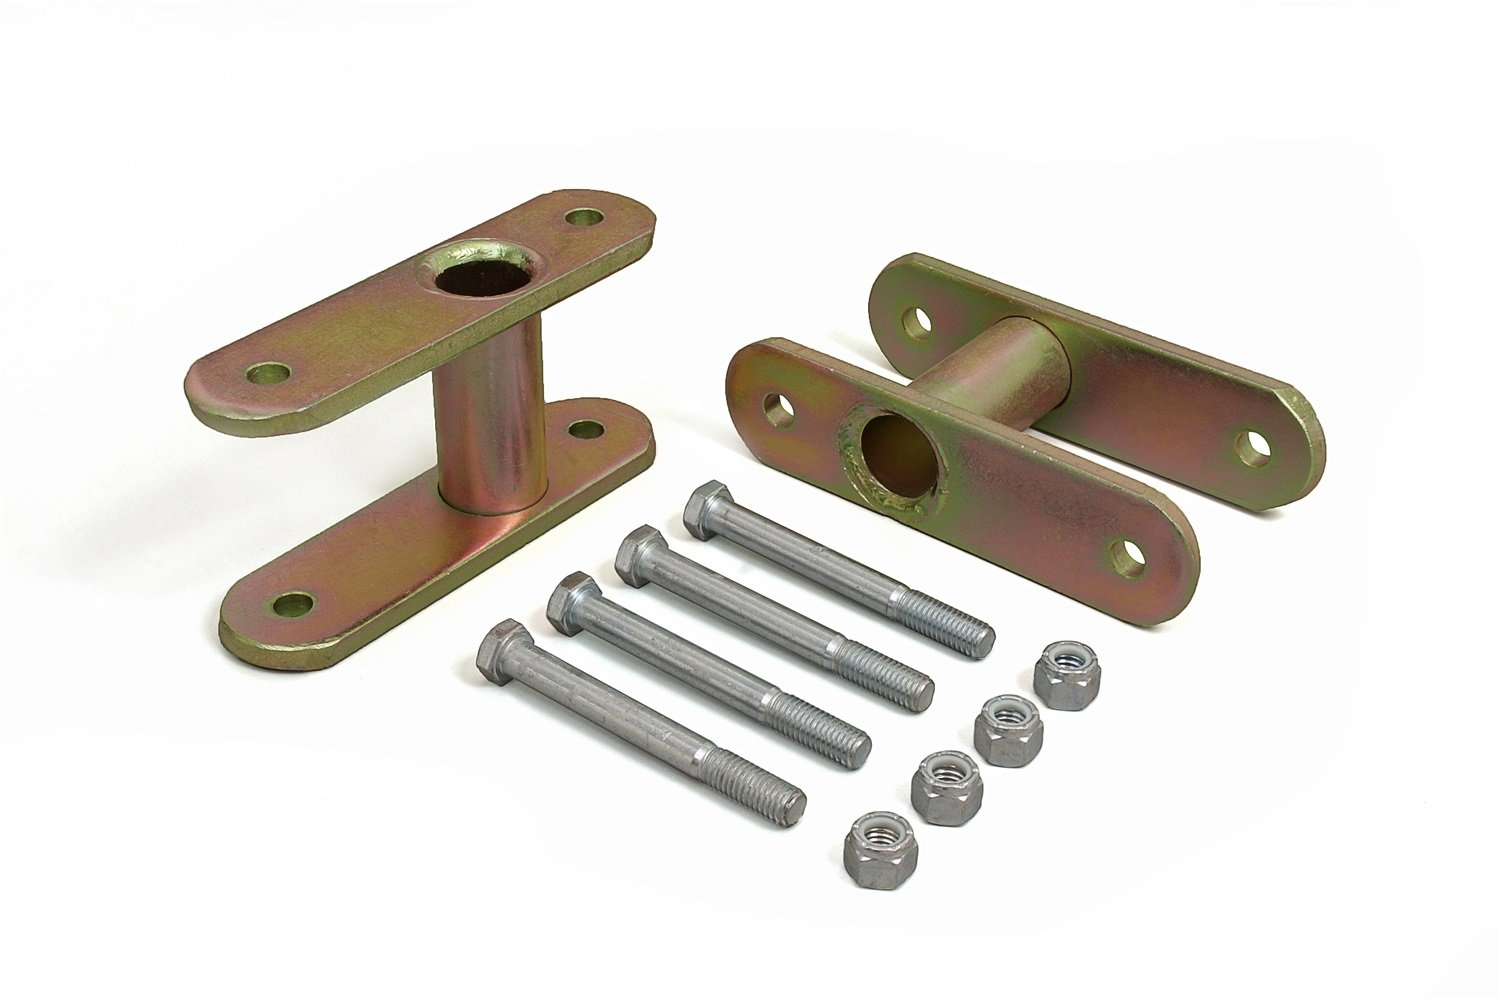 Daystar, Jeep YJ Wrangler ½'' Rear Lift NonGreasable Shackle, fits 1987 to 1996 2/4WD, KJ60011, Made in America